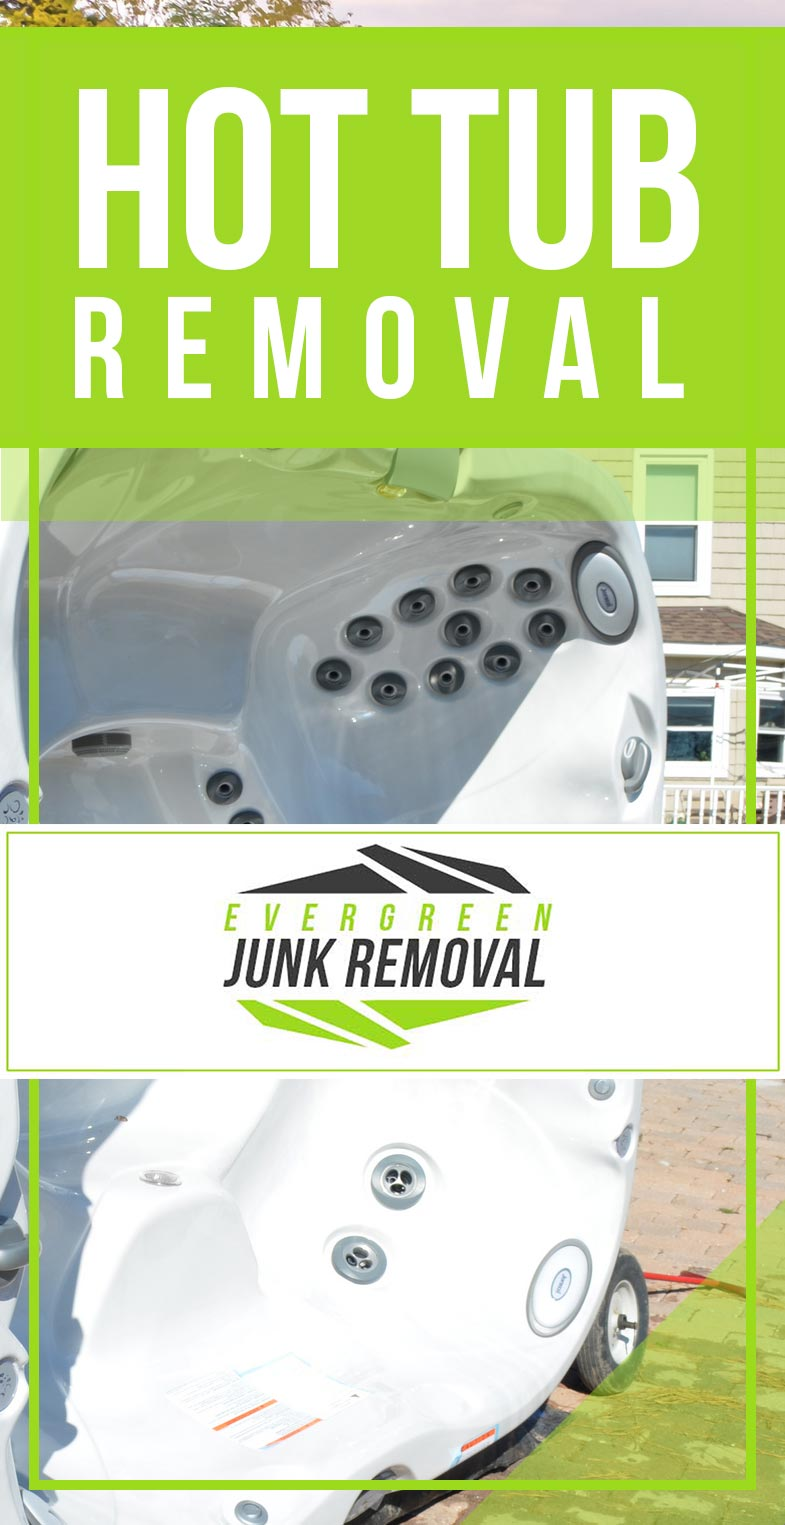 Bedford Hot Tub Removal